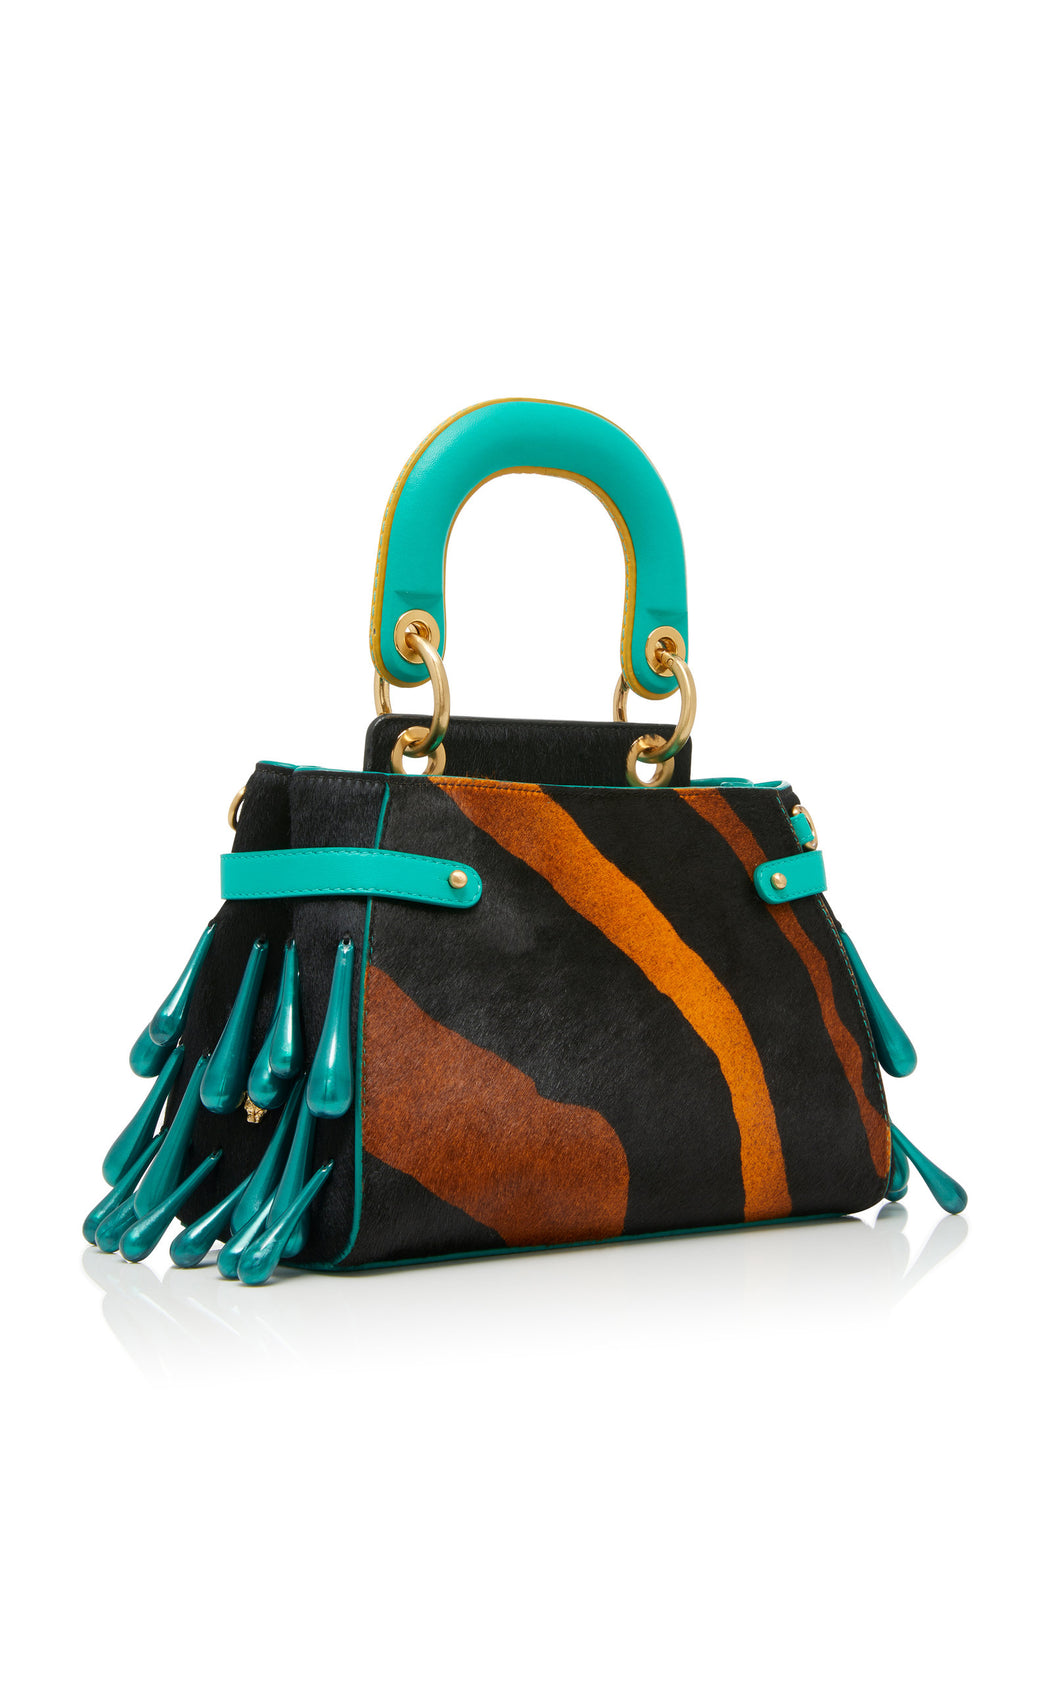 "A ladylike luxury frame bag in animal print cavallino with teal nappa leather that fits all the essentials. Comes with a detachable cross-body strap and our special ""macaron"" top handle. The trapeze bag is embellished with pearlescent resin droplets."